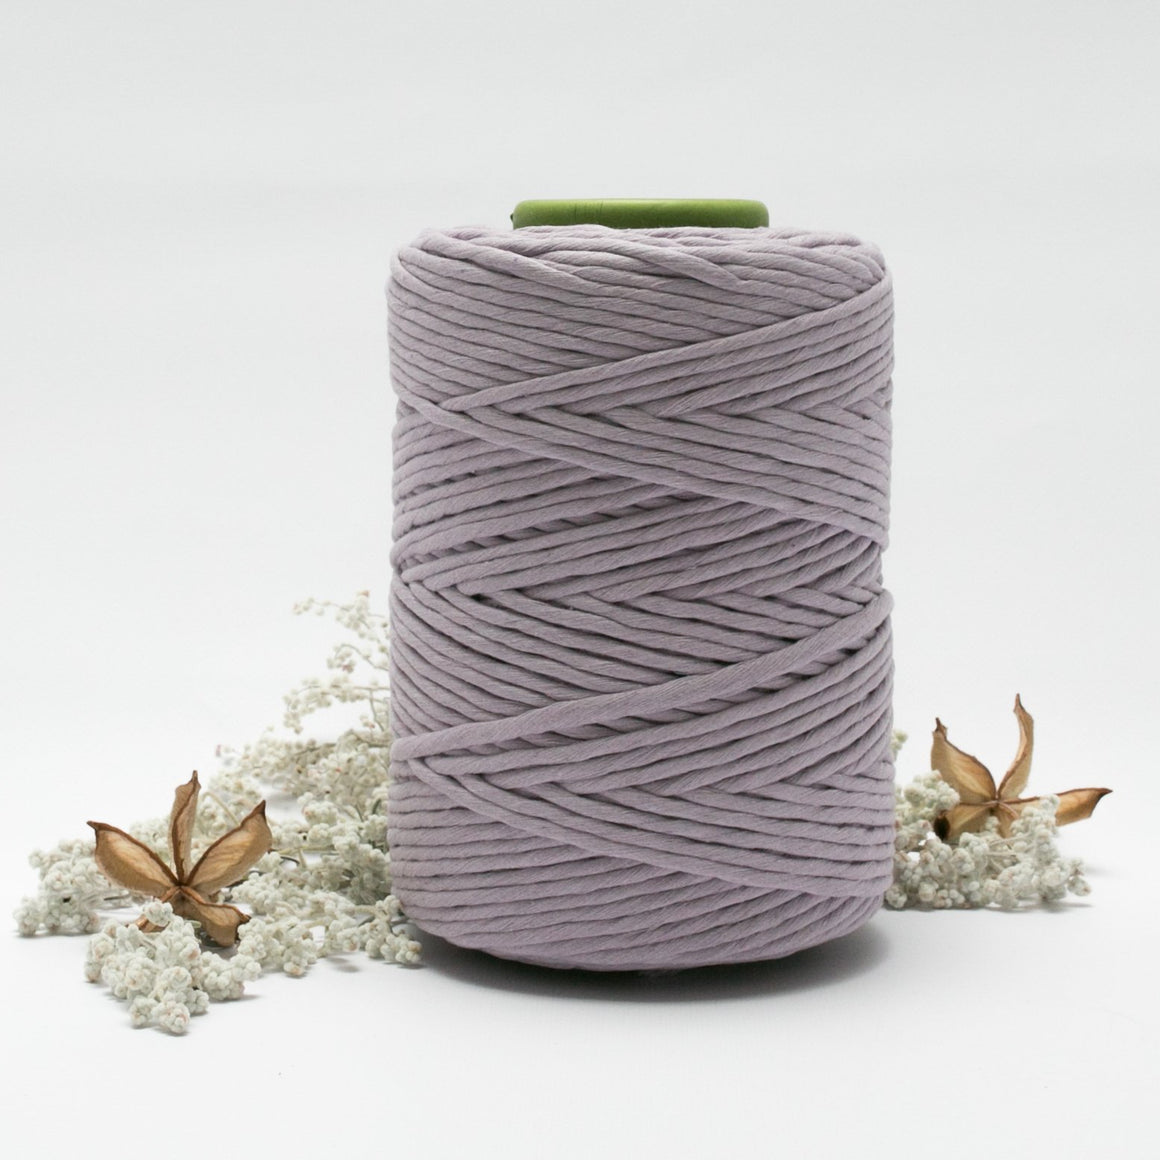 Lilac // Macrame Cotton String - Luxe Colour Cotton - Mary Maker Studio - [macrame] - [weaving] - [macrame_art] - [macrame_rope] - [macrame_cord] - [macrame_workshops] - [macrame_string] - [learn-_to_macrame] - [macrame_patterns]